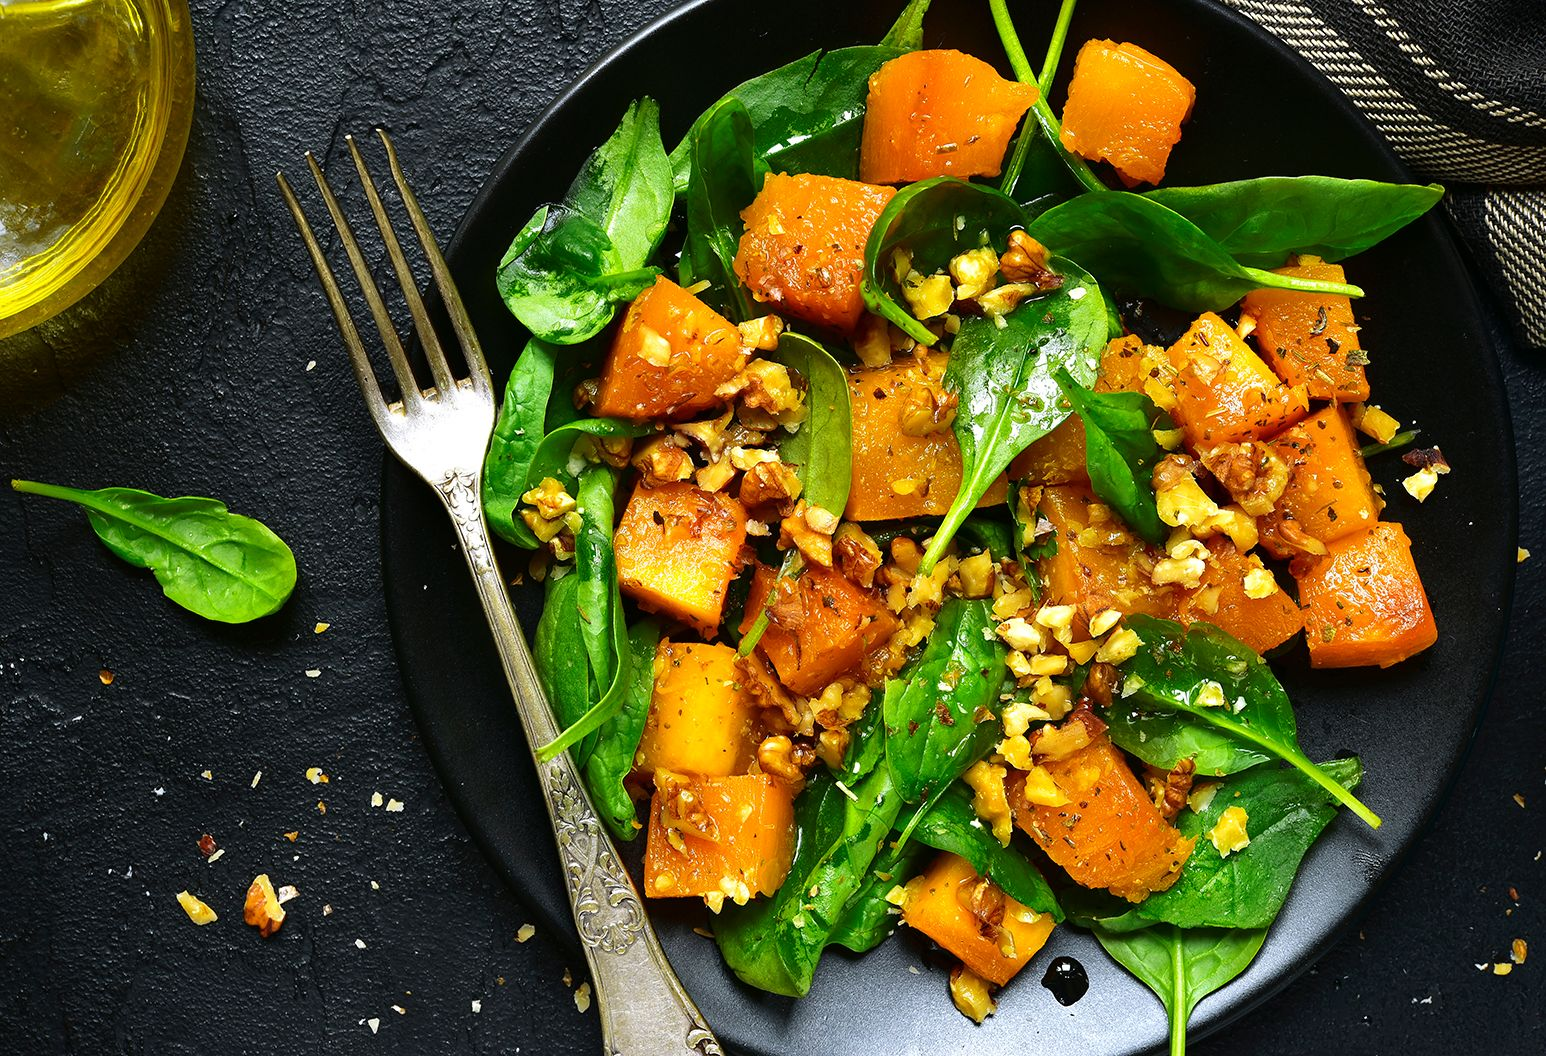 A dish of bright orange roasted acorn squash with green spinach is presented on a black plate. A silver fork rests on an angle on the bottom left side of the plate.